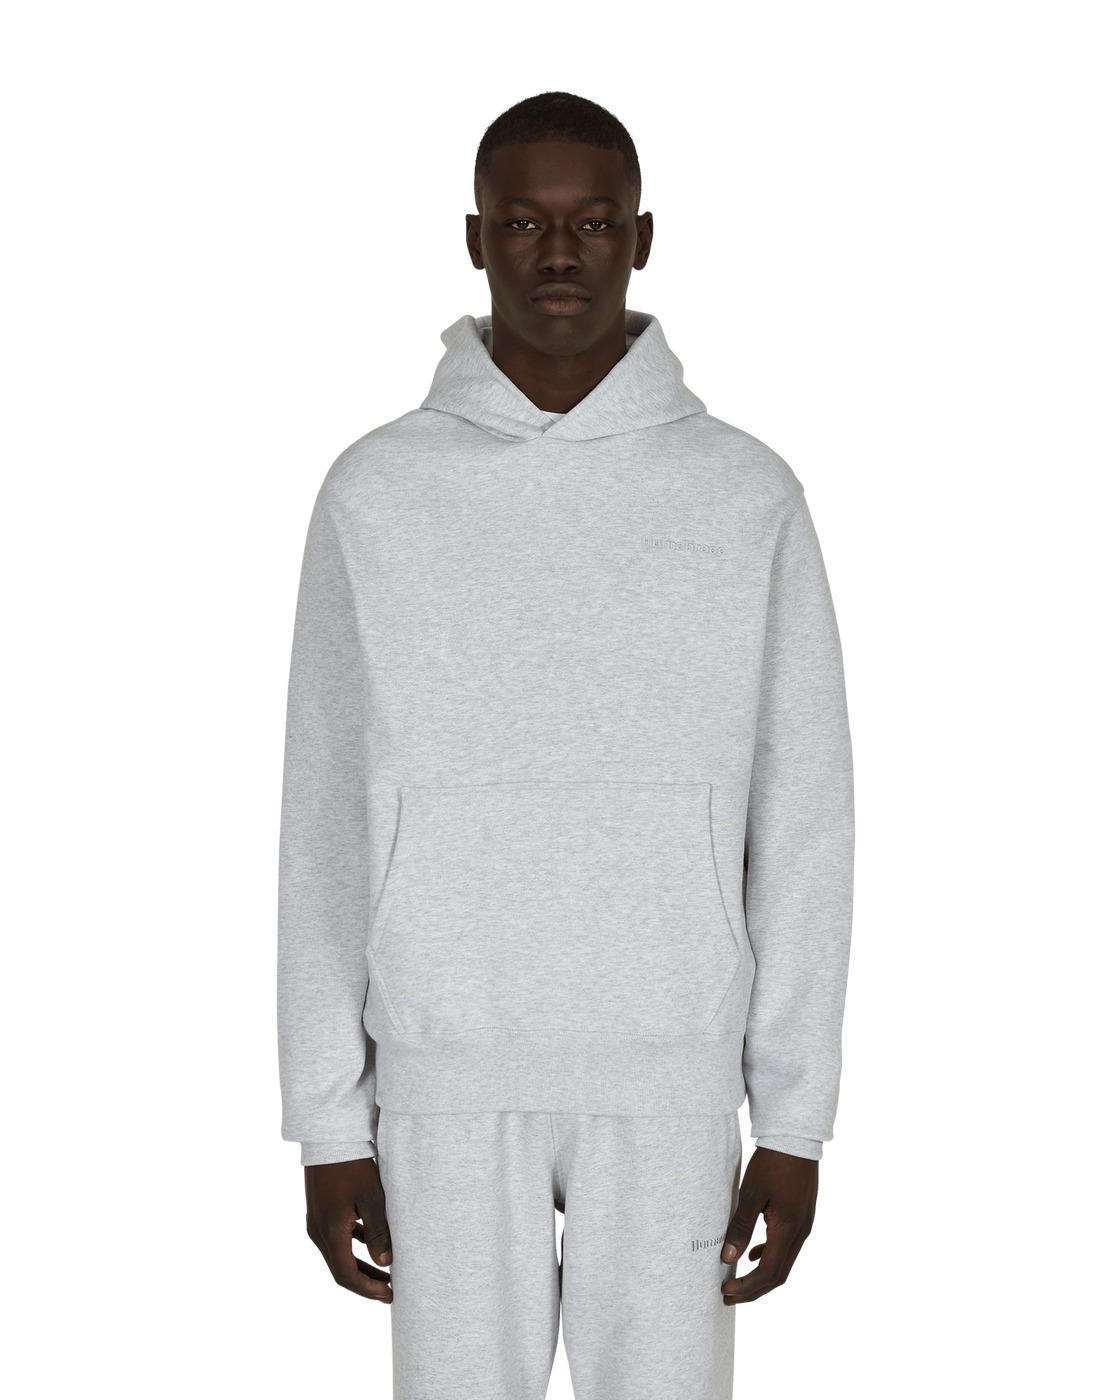 Photo: Adidas Originals Pharrell Williams Basics Hooded Sweatshirt Light Grey Heather